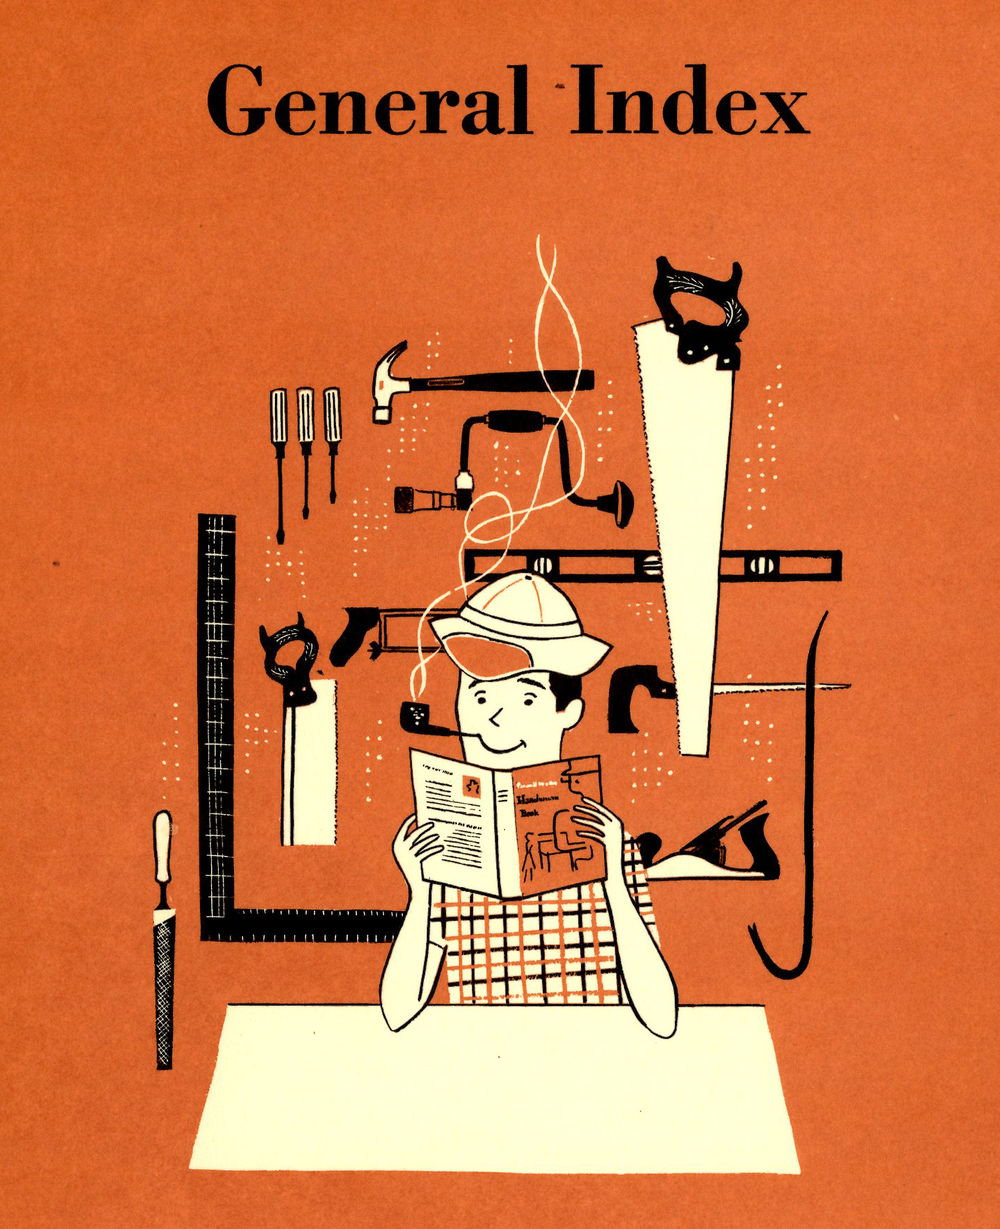 Illustrator uncredited, General Index, section divider illustration, BH & G Handyman's Book, 1957.